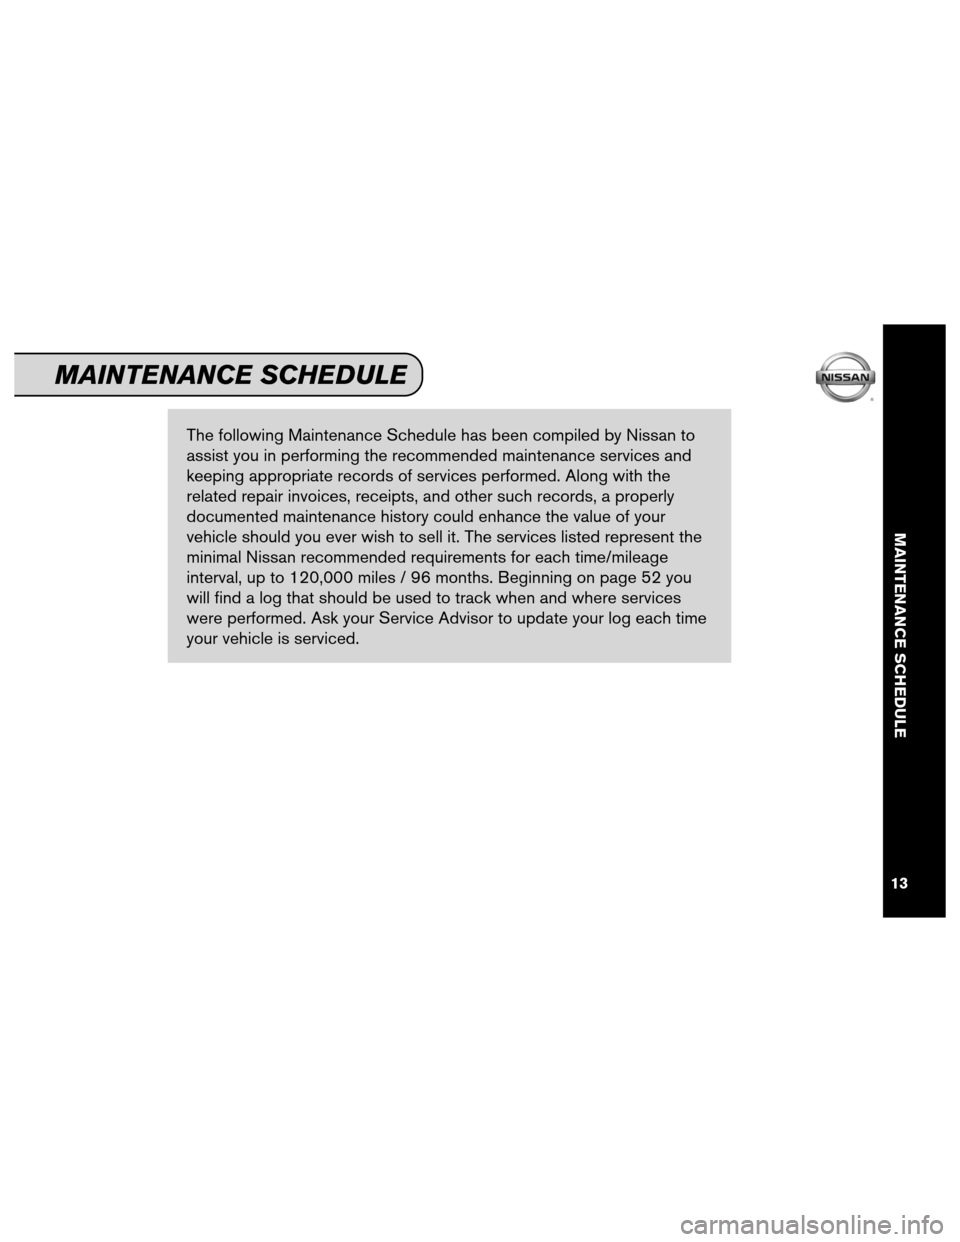 NISSAN ALTIMA COUPE 2012 D32 / 4.G Service And Maintenance Guide The following Maintenance Schedule has been compiled by Nissan to assist you in performing the recommended maintenance services and keeping appropriate records of services performed. Along with the re